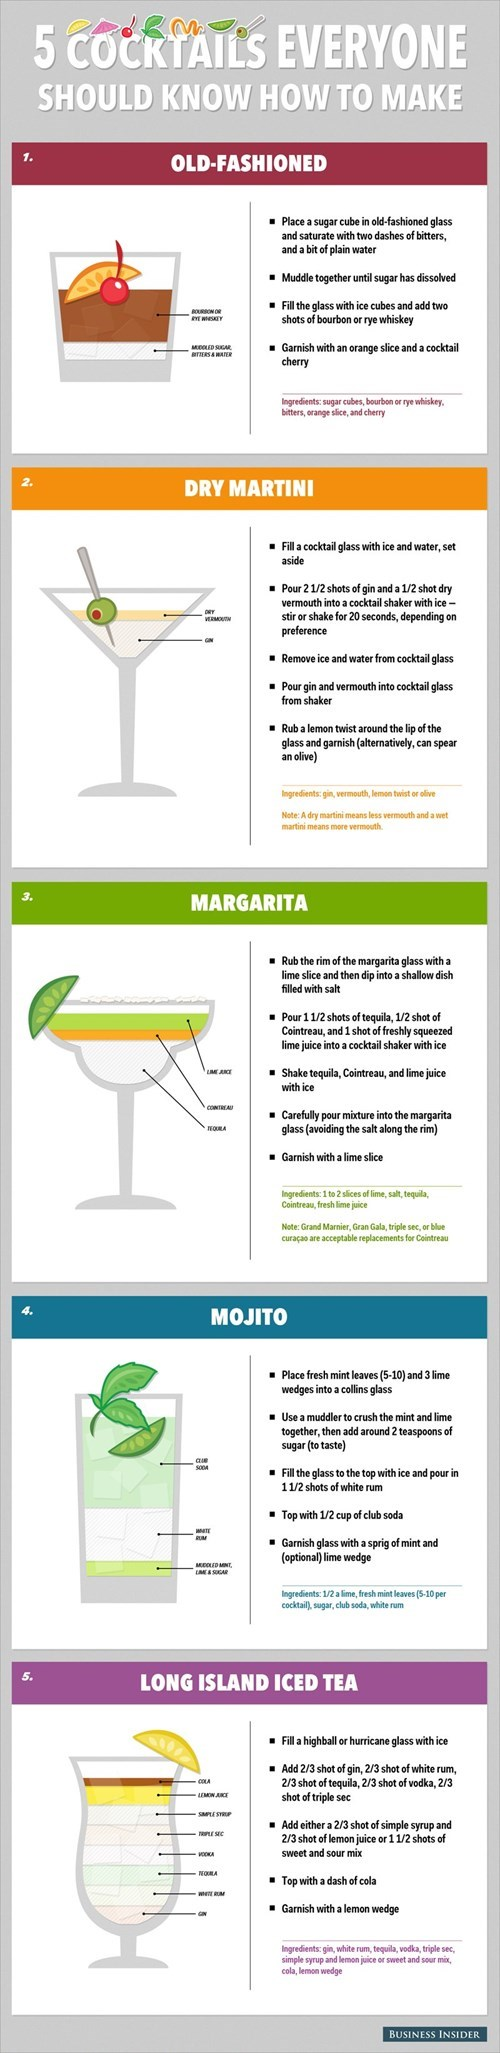 Know Your Classic Cocktails